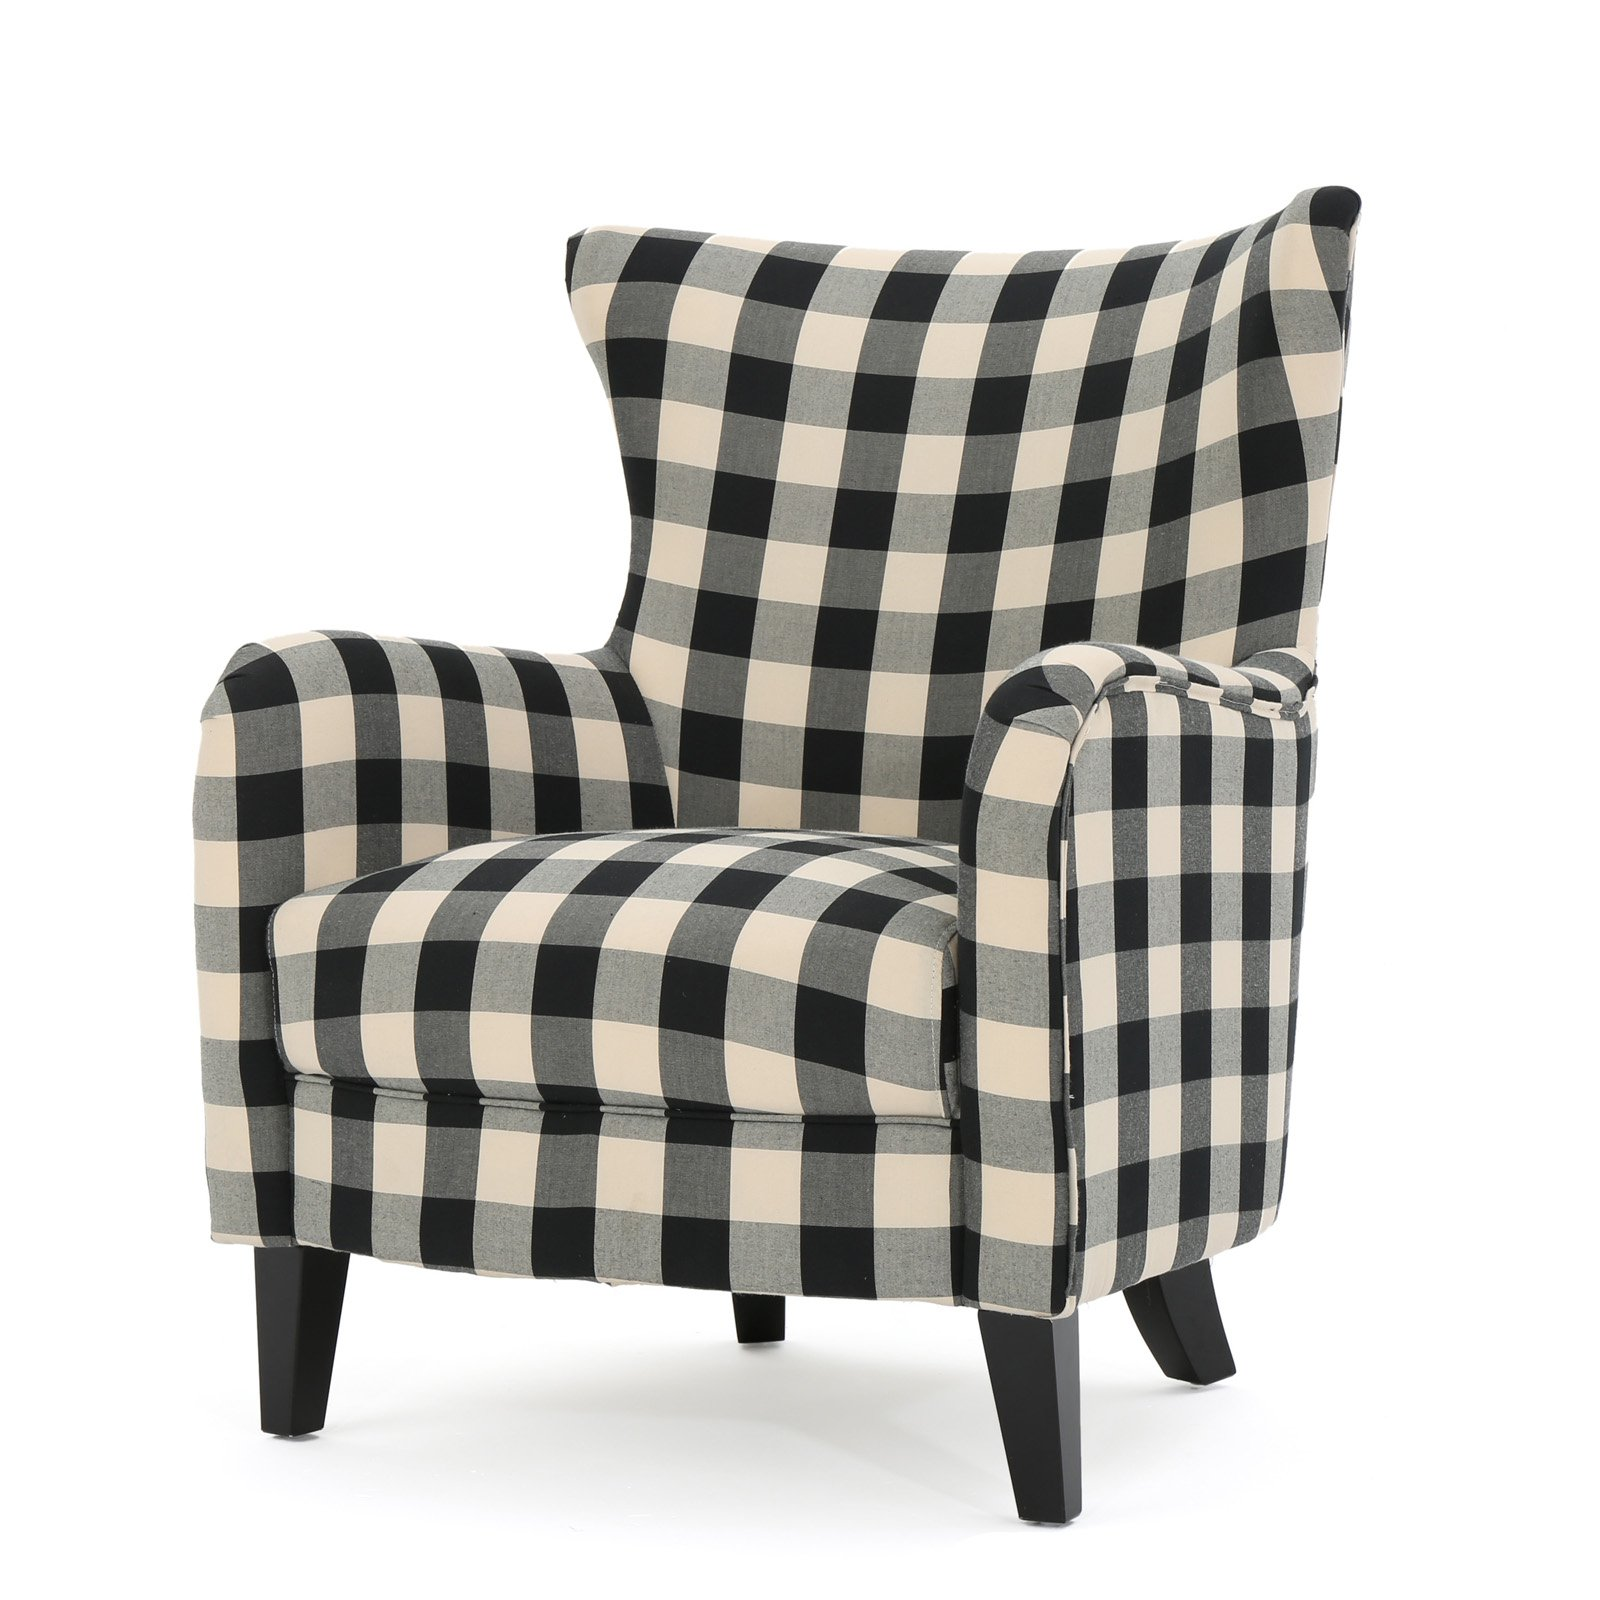 Plaid black and white chair